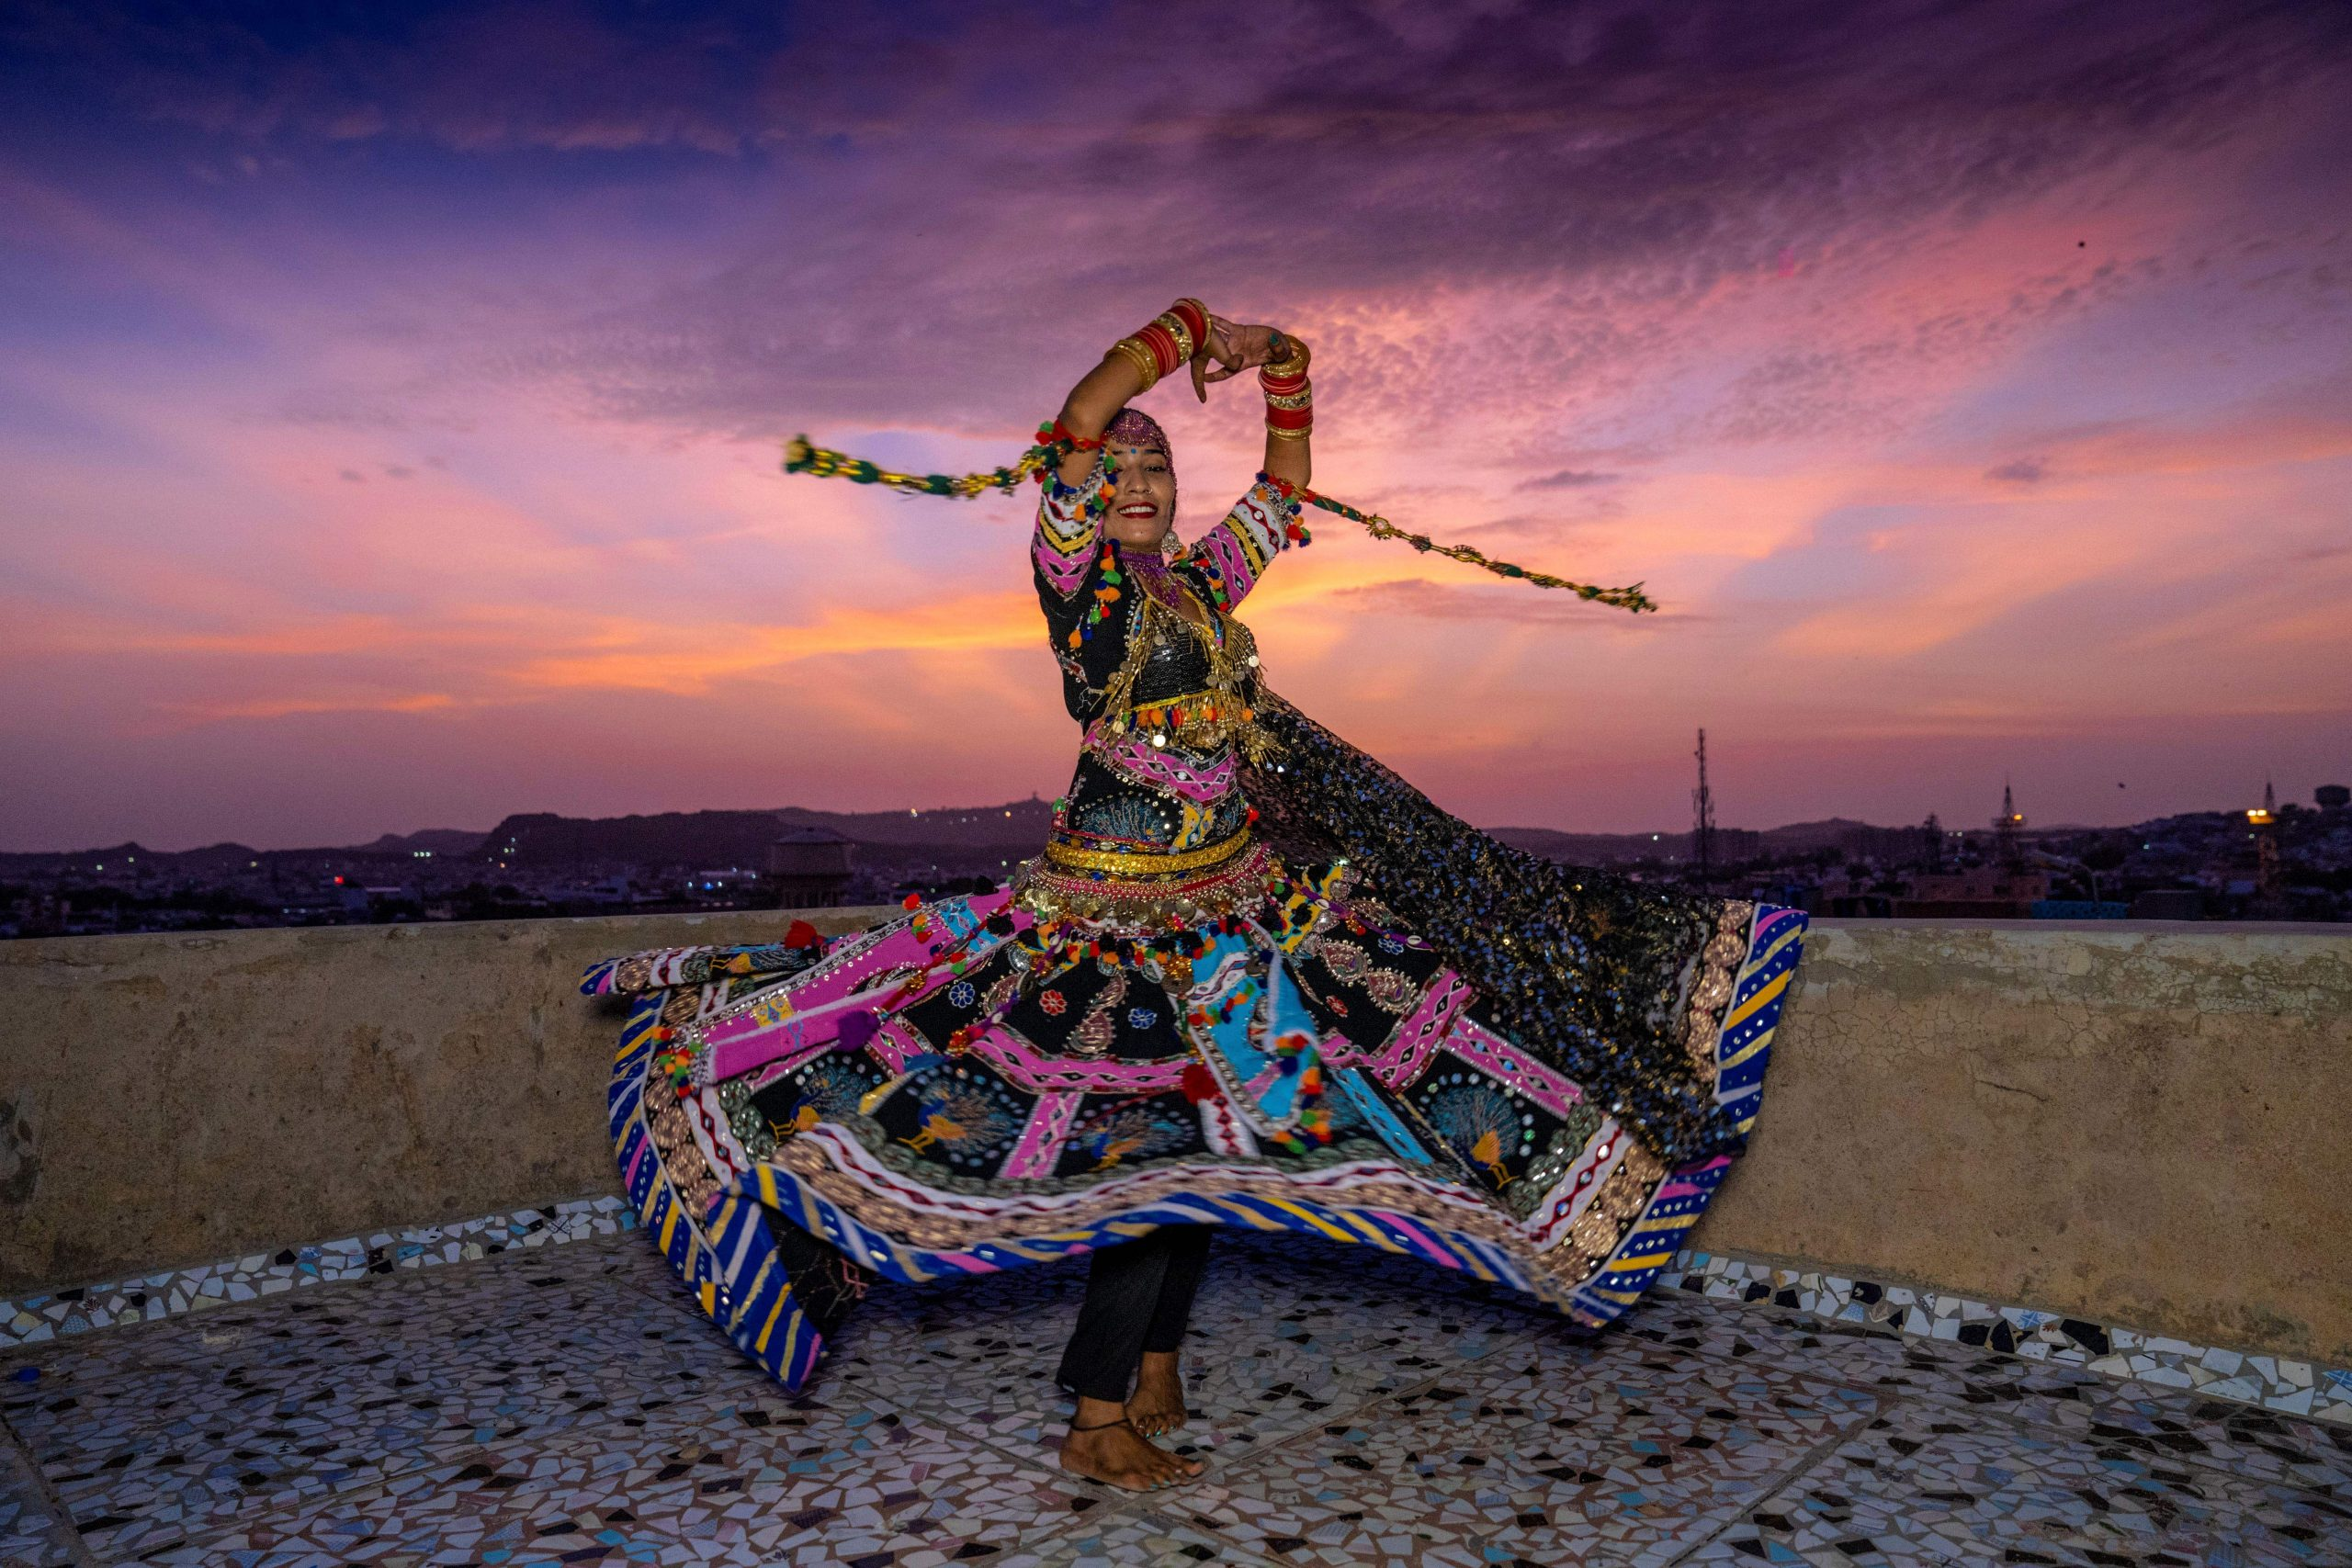 """In this picture taken on August 13, 2020, Kalbeliya gypsy dancer Aasha Sapera practices before hosting online dance classes amid the COVID-19 coronavirus pandemic in Jodhpur. - The coronavirus pandemic has forced many people to go online, but the largely nomadic, marginalised Kalbeliya face bigger challenges than most, with several living in mud huts or tents with patchy electricity and non-existent WiFi. """"In the beginning, I had no idea how to make this work,"""" dancer Aasha Sapera told AFP, describing her early forays into hosting classes on Zoom. (Photo by Sunil VERMA / AFP) / To go with AFP story 'INDIA-HEALTH-VIRUS-DANCE-COMMUNITIES-TRADITION-TECH' feature by Ammu Kannampilly and Sunil Verma (Photo by SUNIL VERMA/AFP via Getty Images)"""